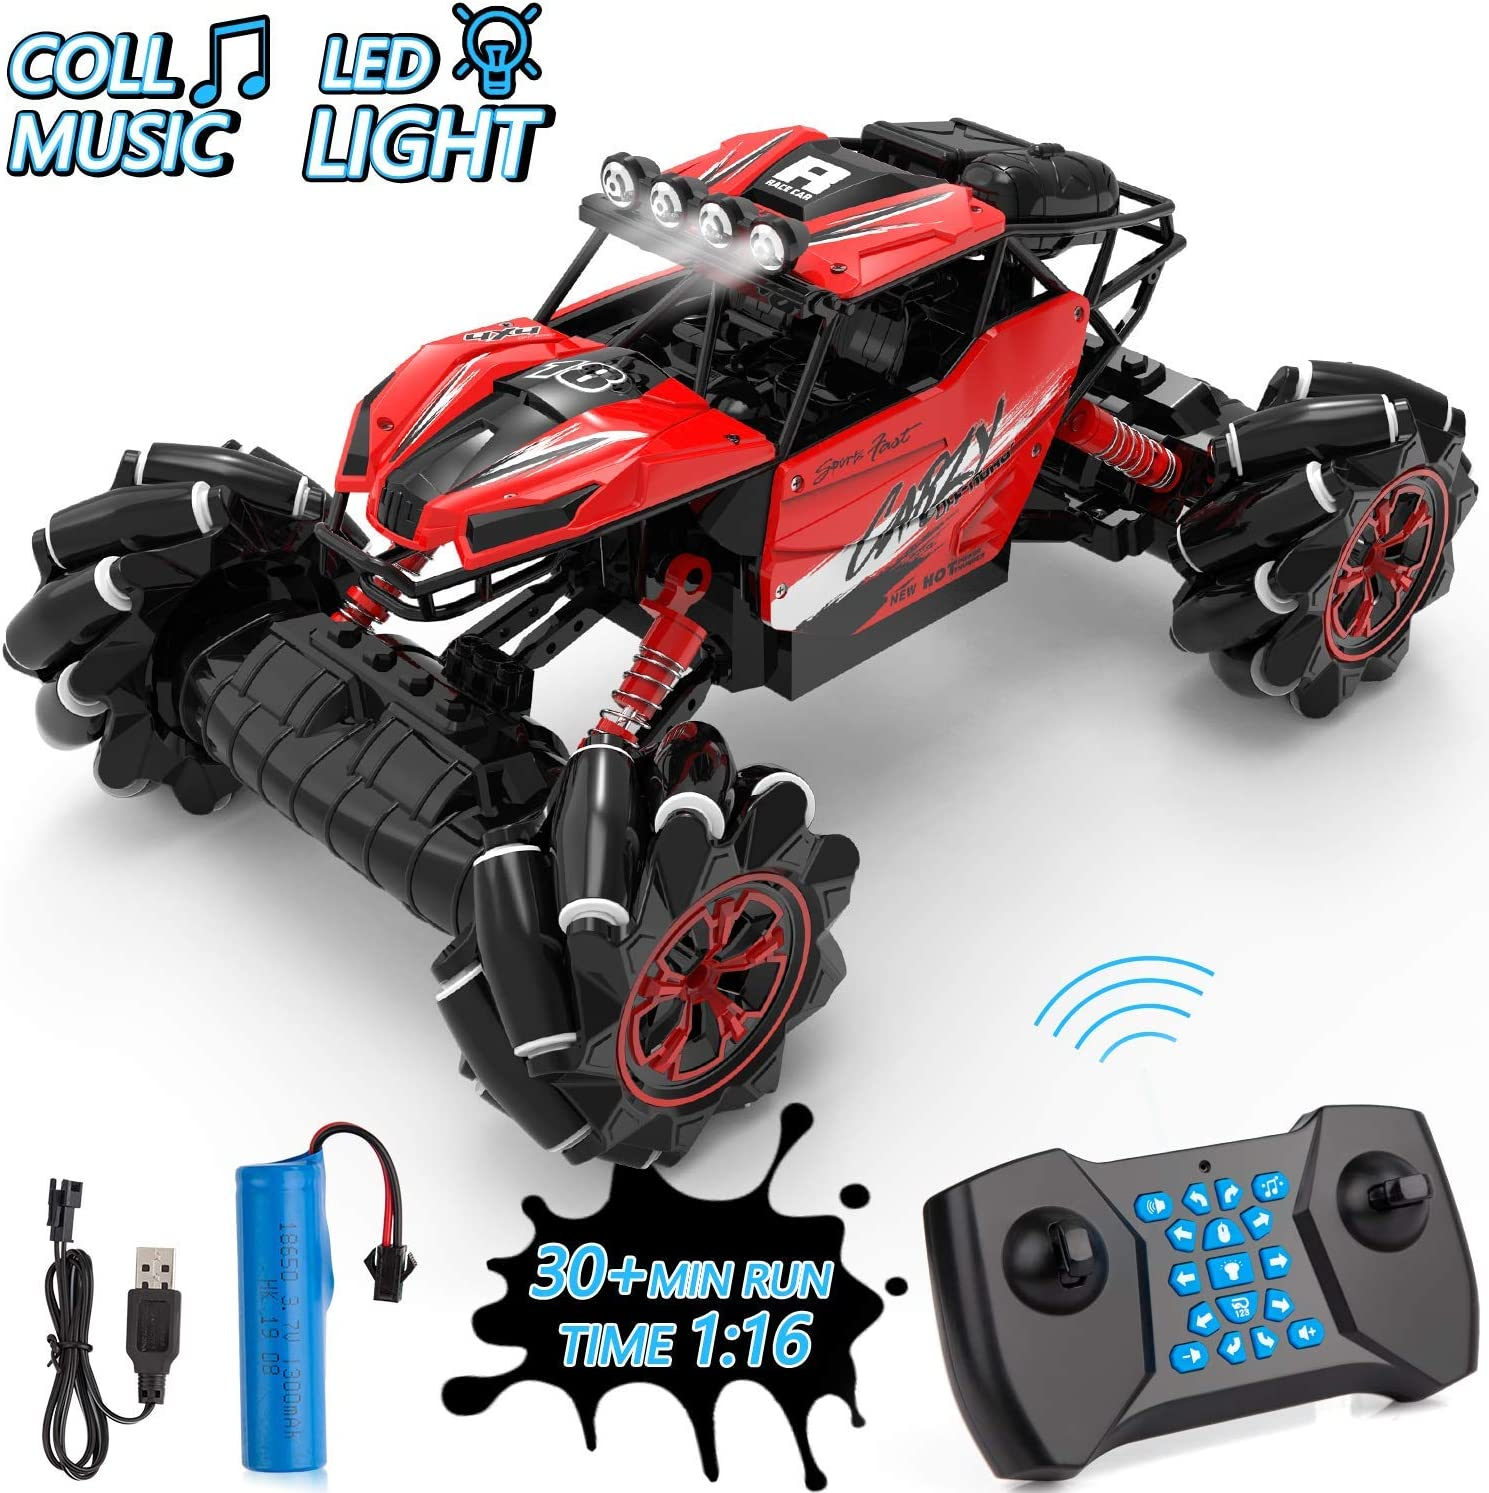 MAO MAO JEWELRY Drift Remote Control Car 1: 16 Rechargeable RC Truck 2.4 Ghz 4WD High Speed Off Road Vehicle with LED Lights & Music, Car Toys for Boys Girls (Red)